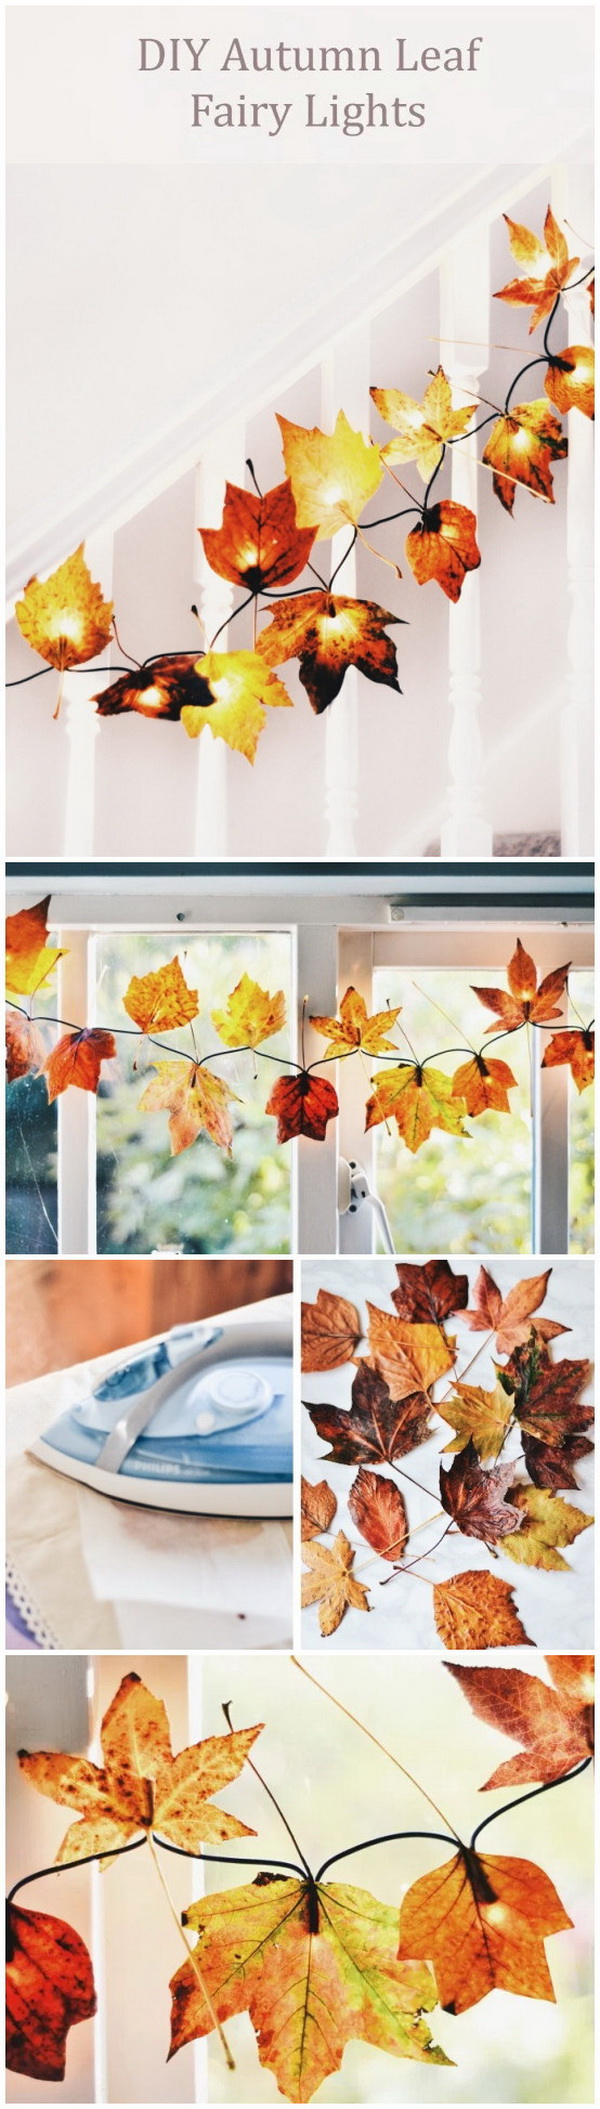 DIY Autumn Leaf Fairy Lights. Bring Some Autumn Decor Into Your Home With  This Stunning